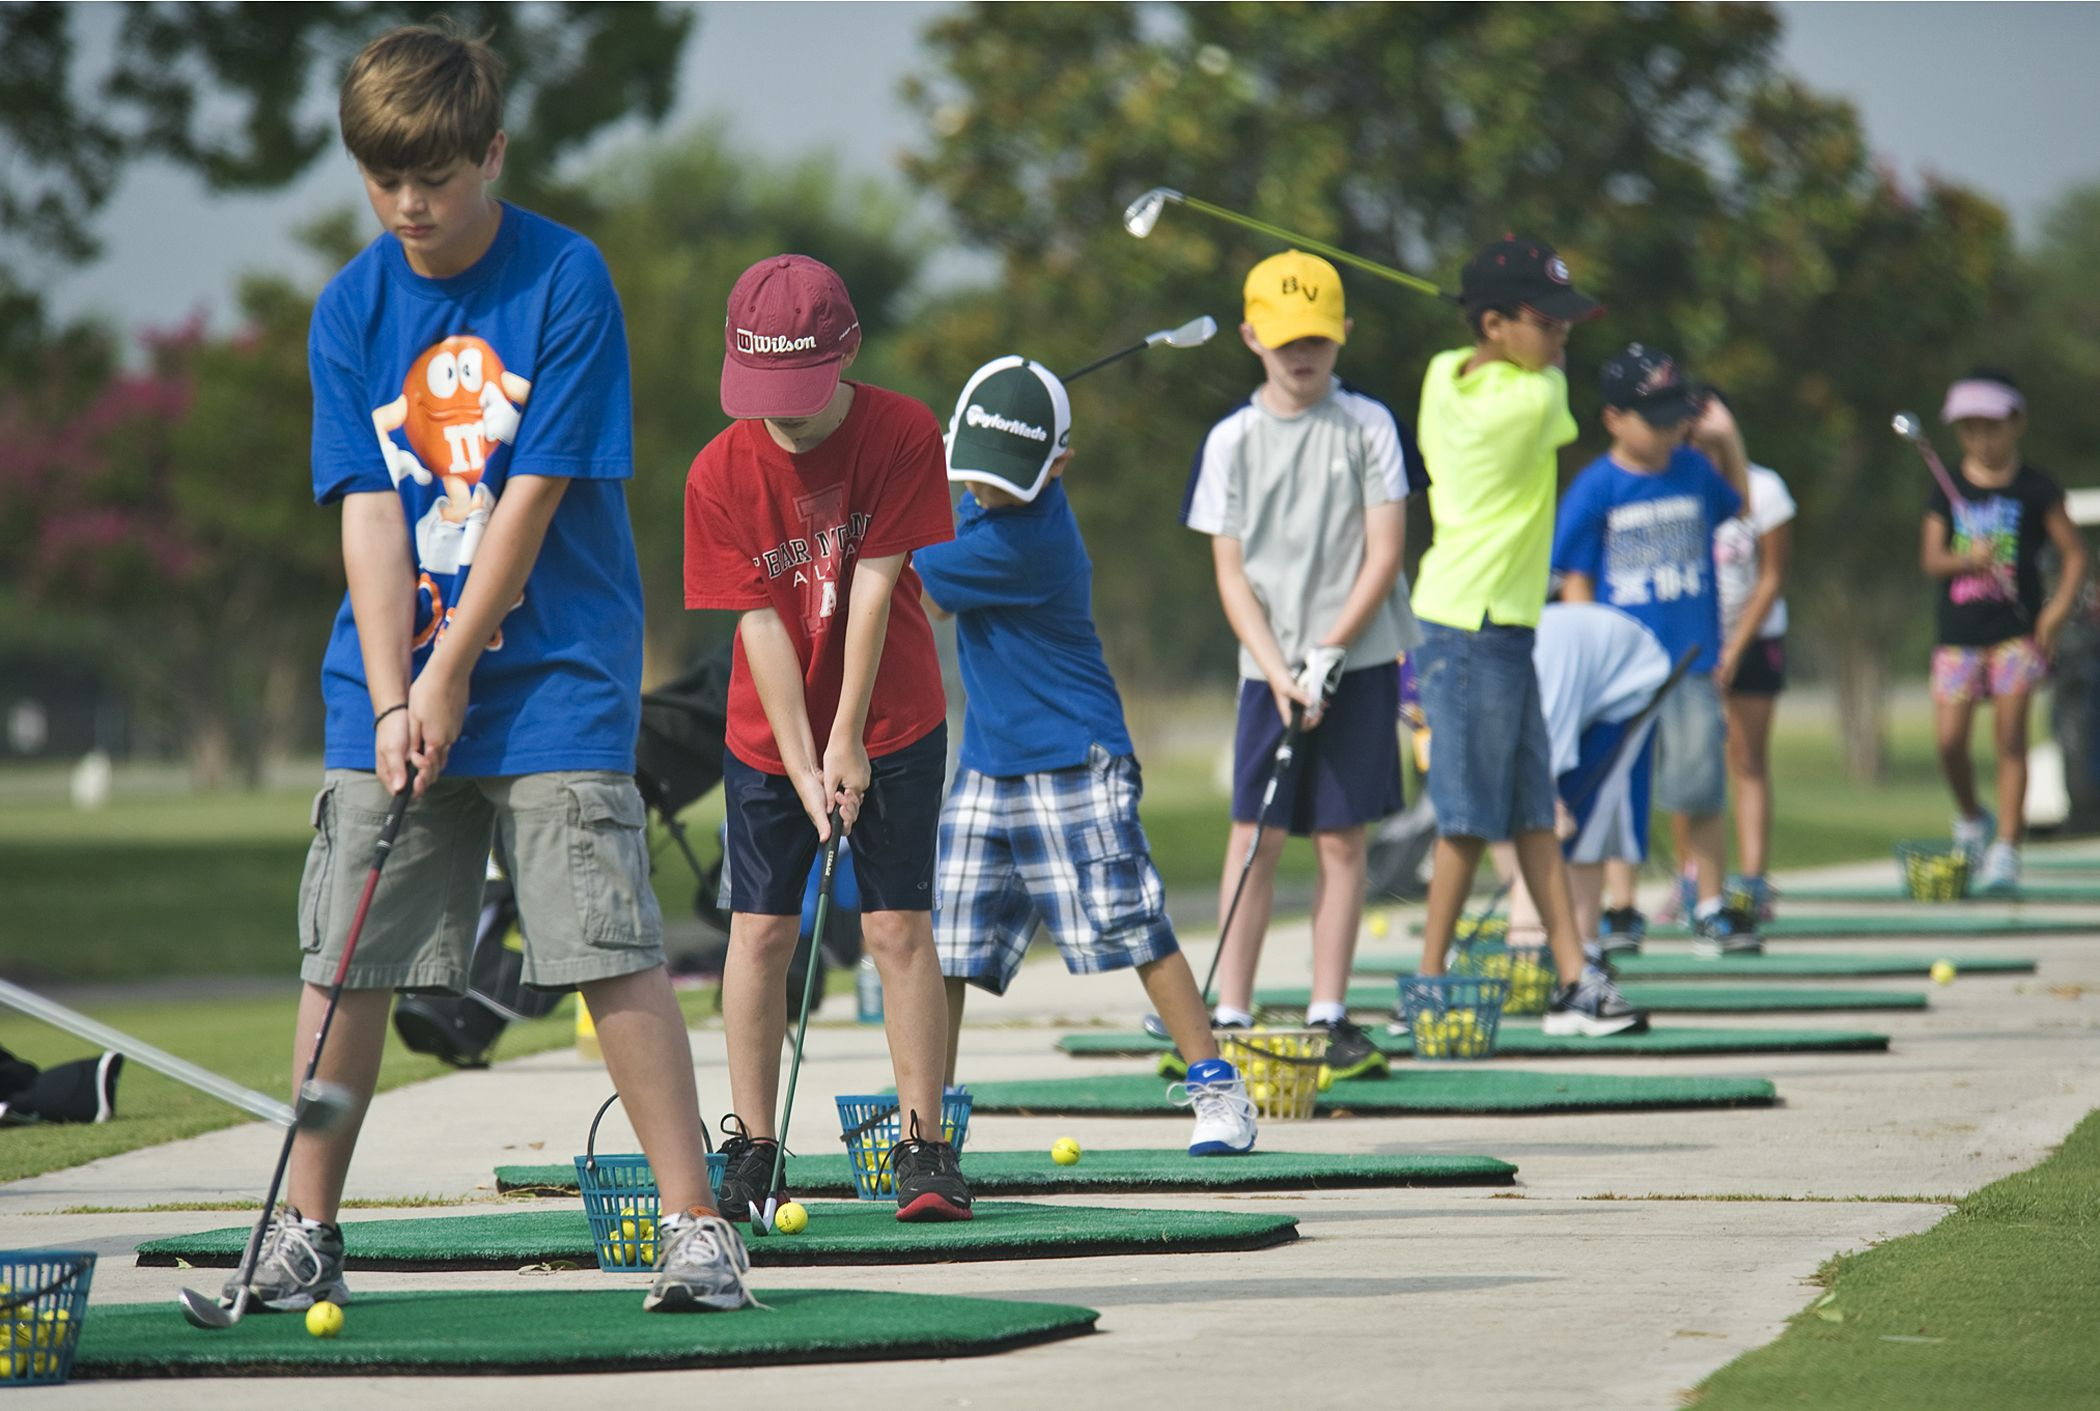 Kids Golf Academy